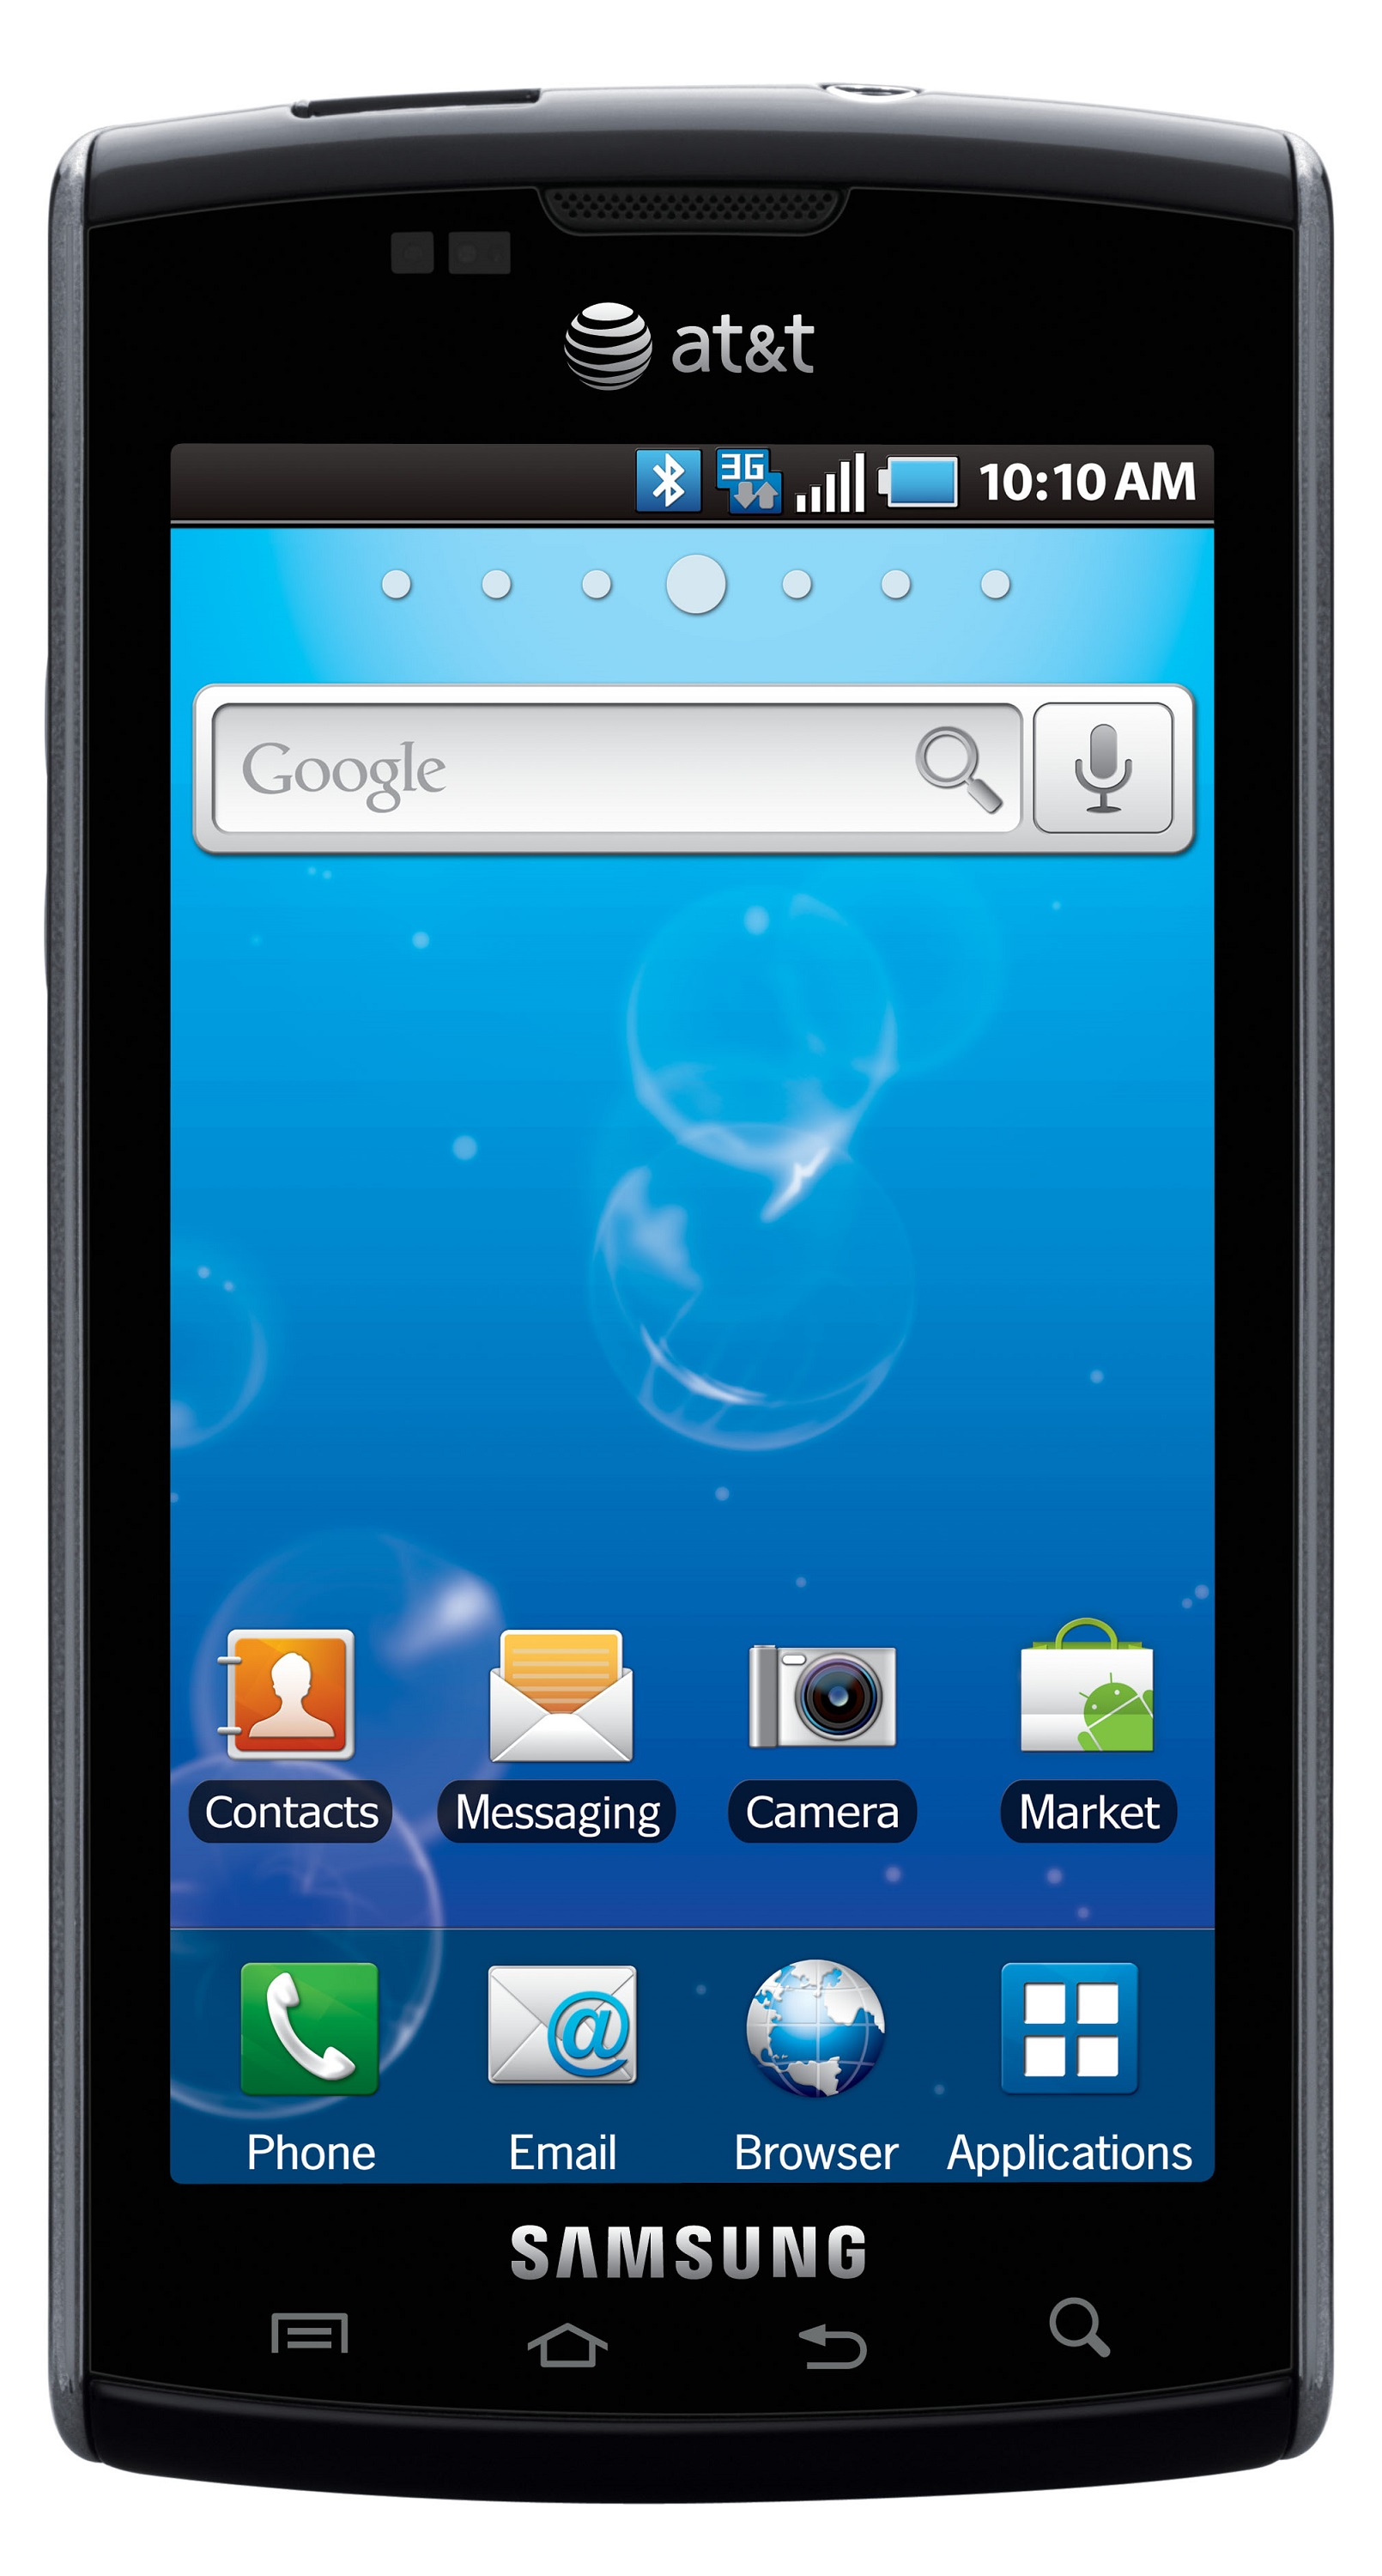 Samsung Galaxy s Captivate i897 Unlocked GSM Android Cell Phone Black